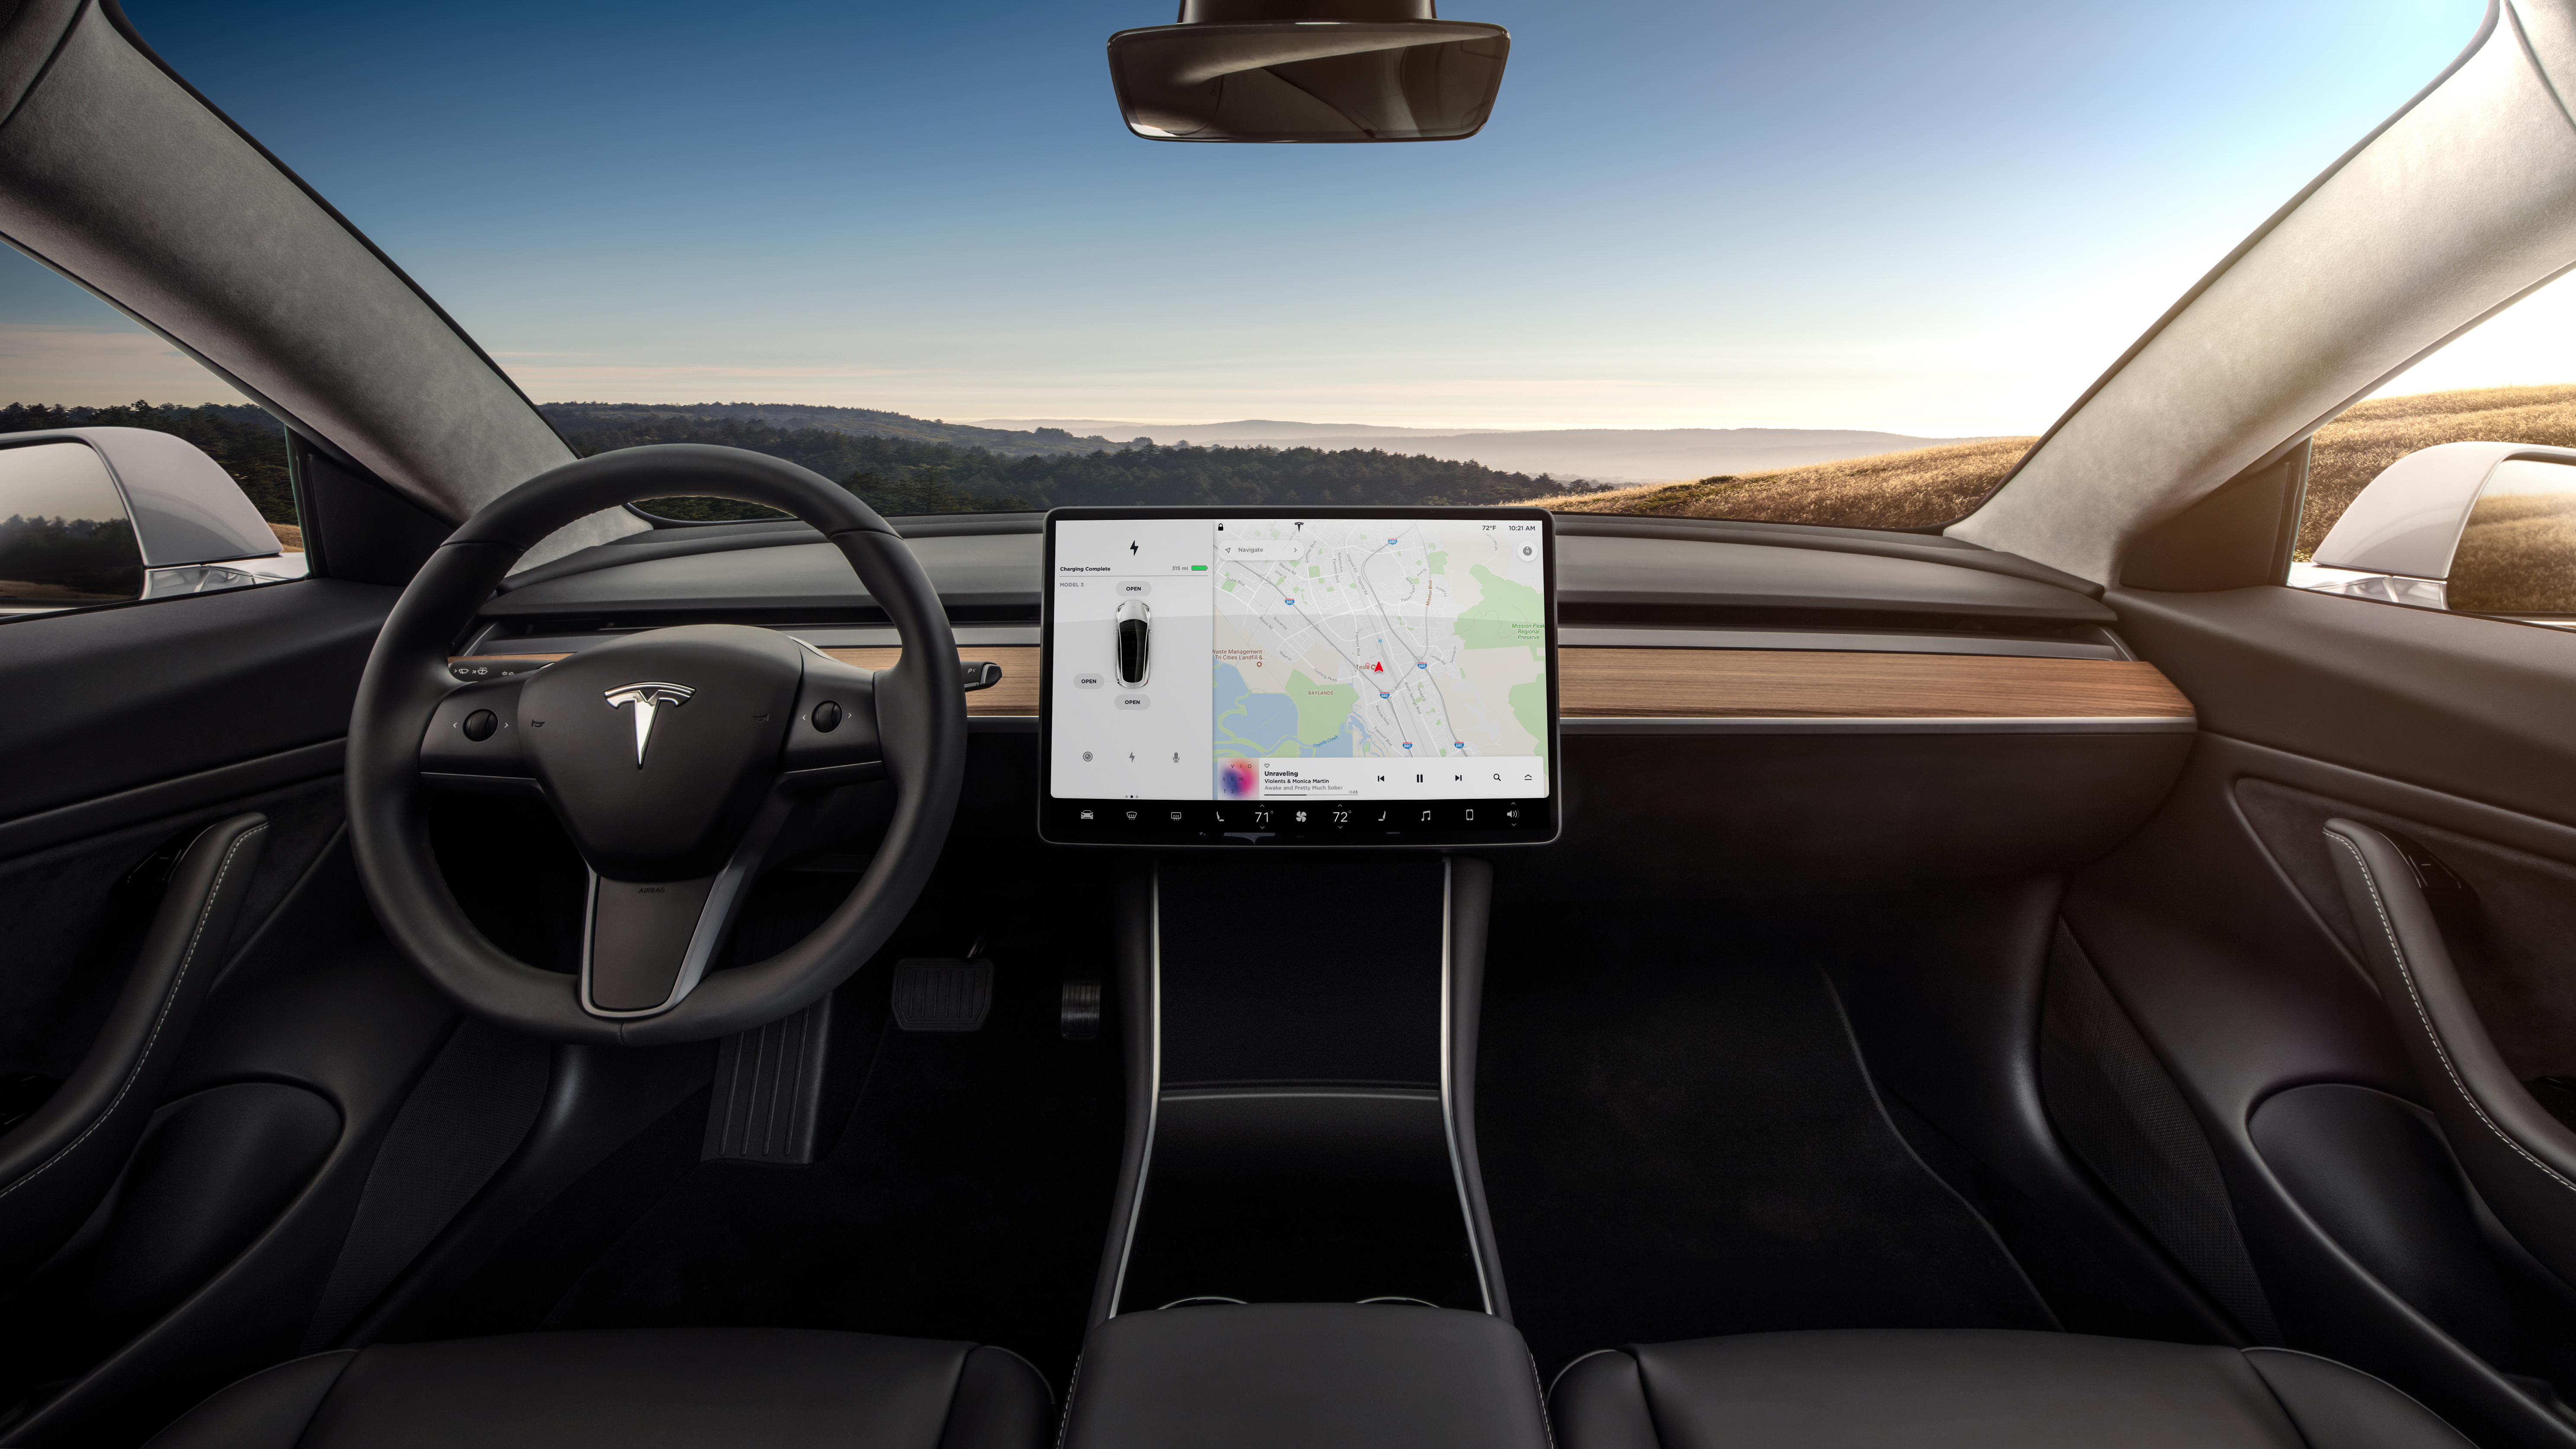 What Is A Fuel Cell >> Tesla Model 3 Interior Dash- Head On - The Green Car Guy